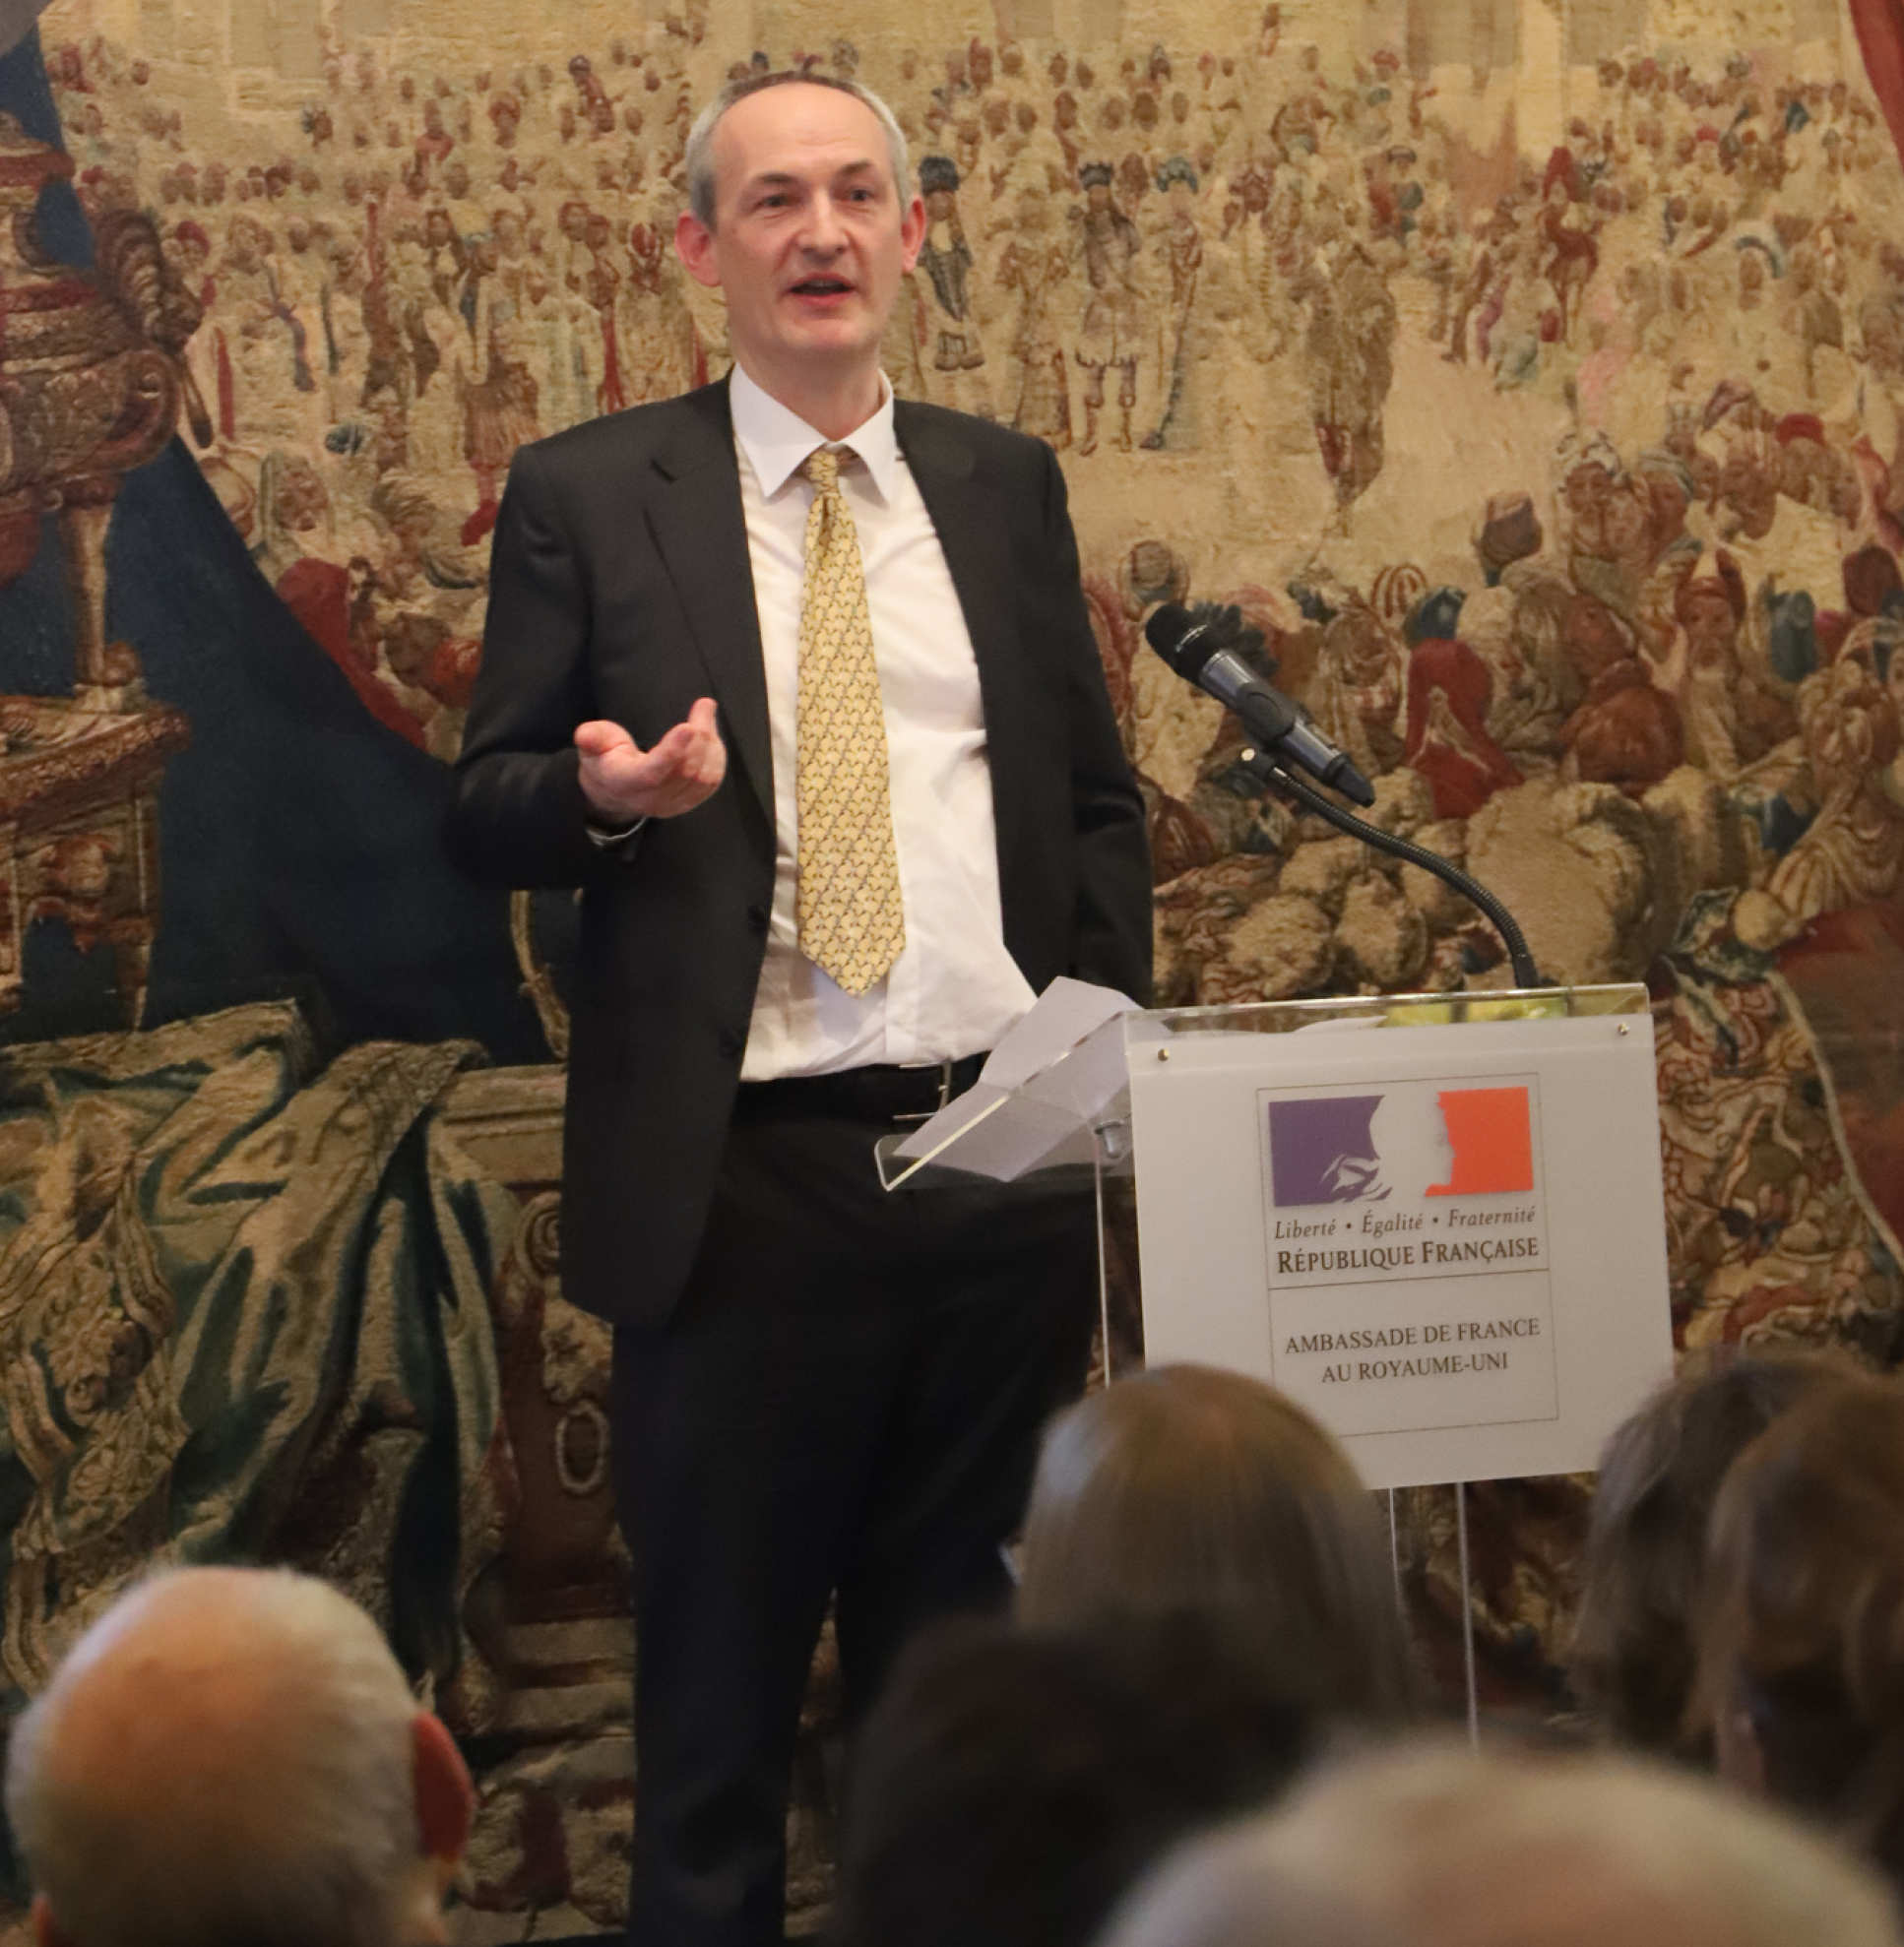 man in suit talking at lectern with tapestry in background